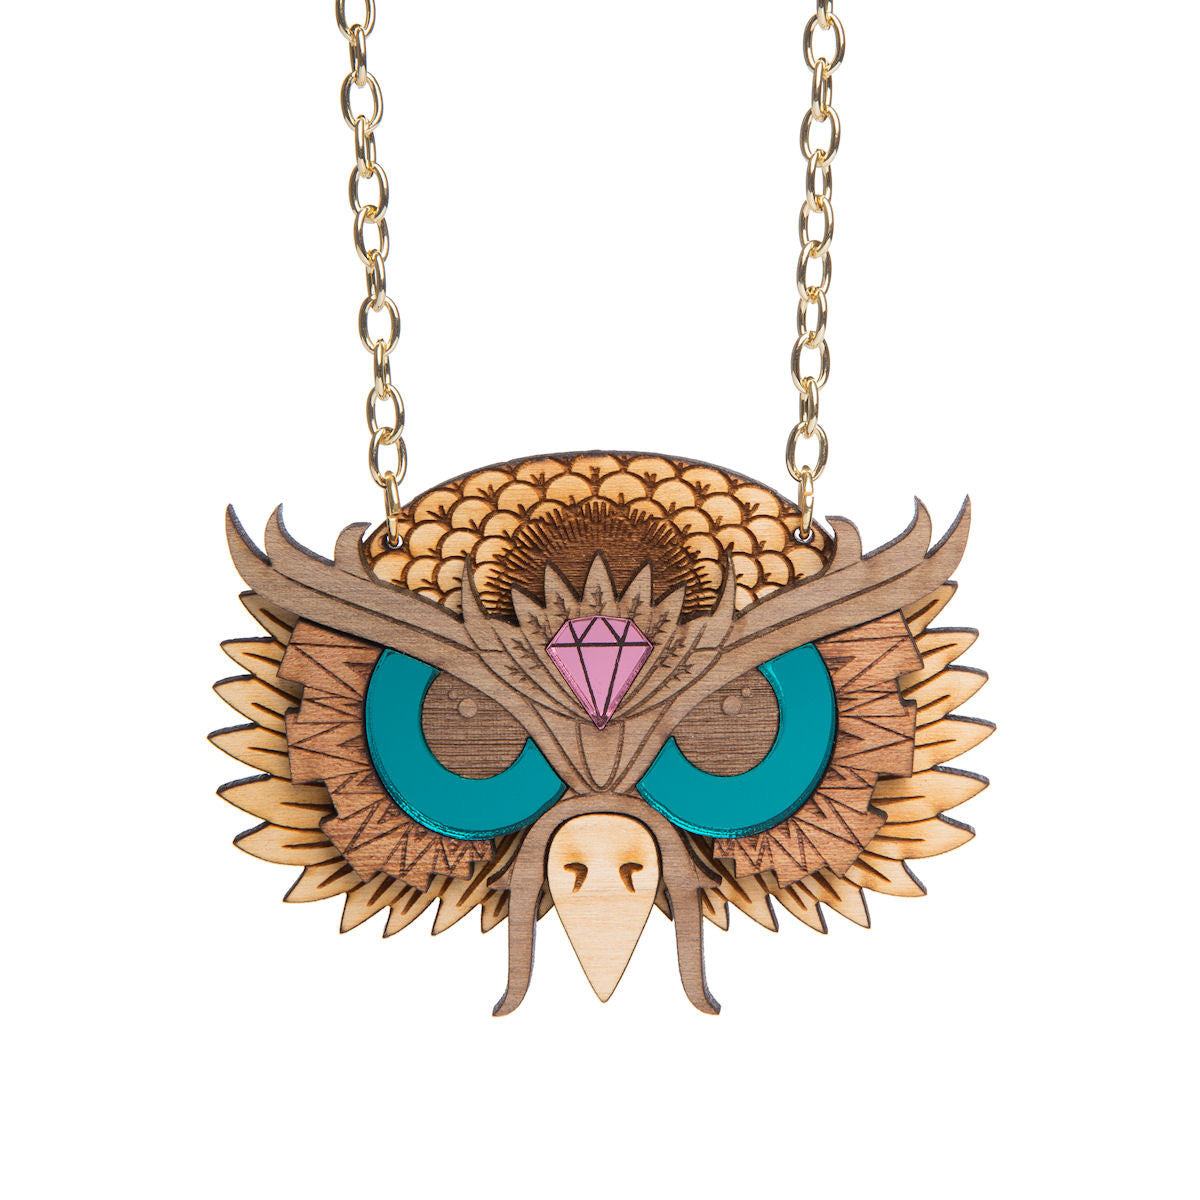 Sugar & Vice Owl Necklace